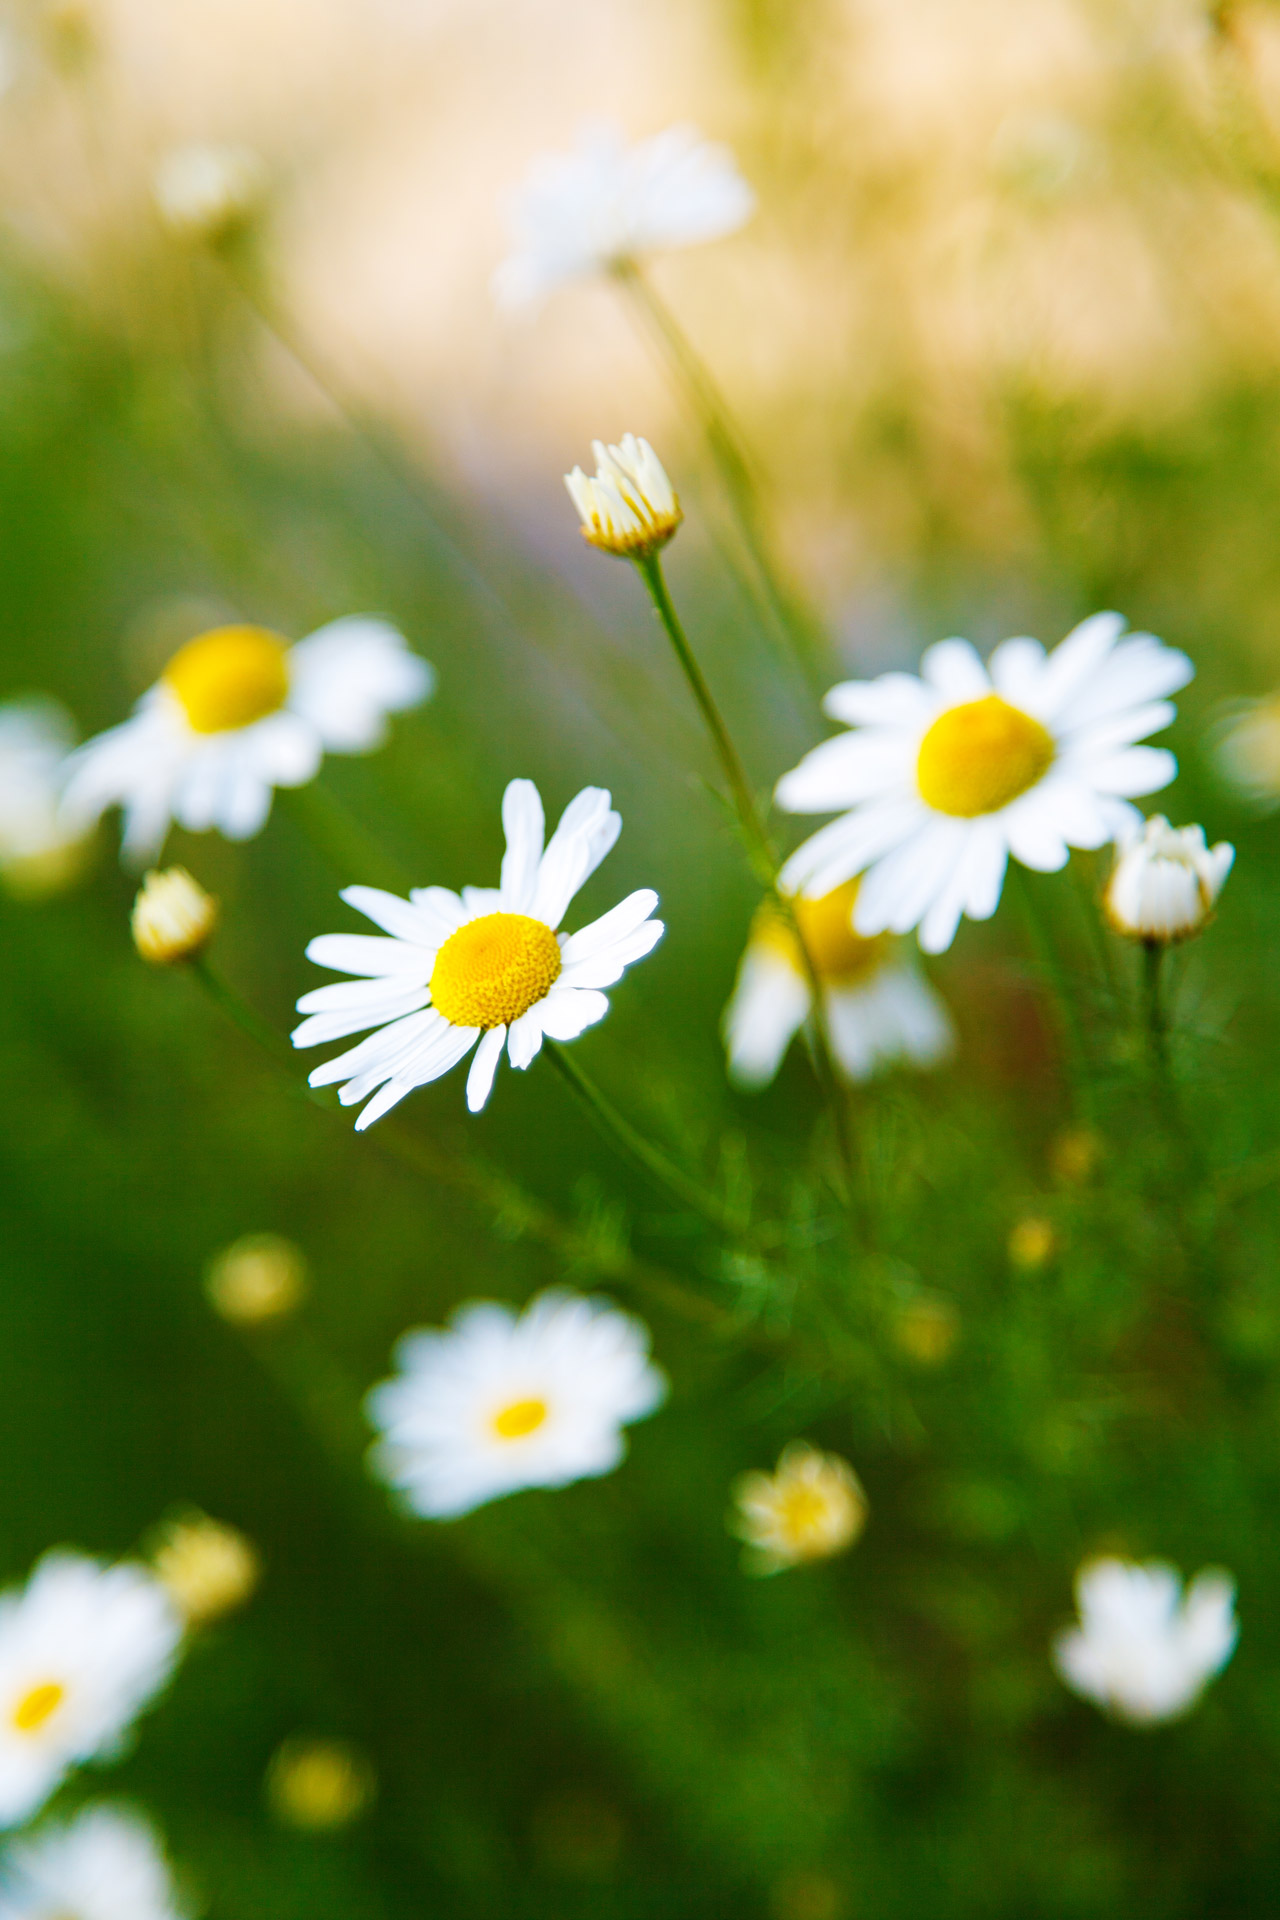 Summer Wallpaper Hd Chamomile Flowers Free Stock Photo Public Domain Pictures